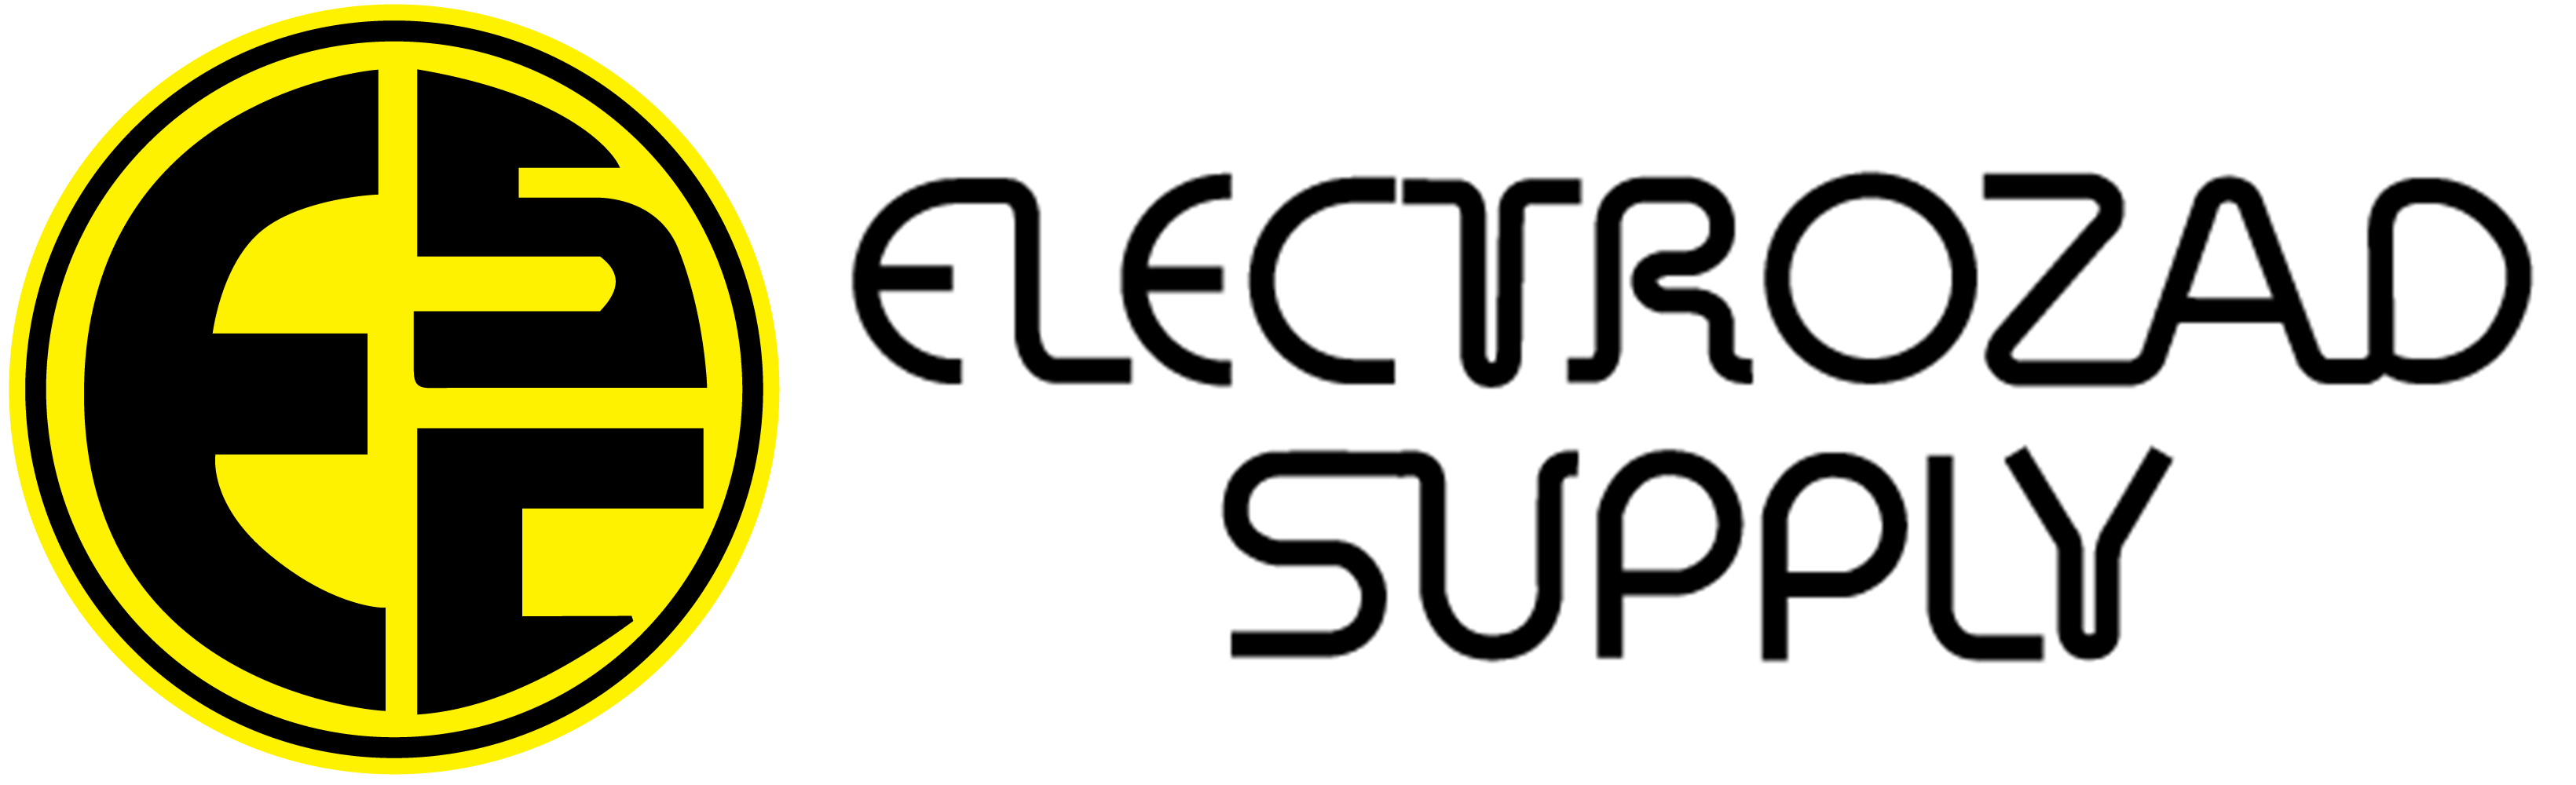 Electrozad supply company limited logo.